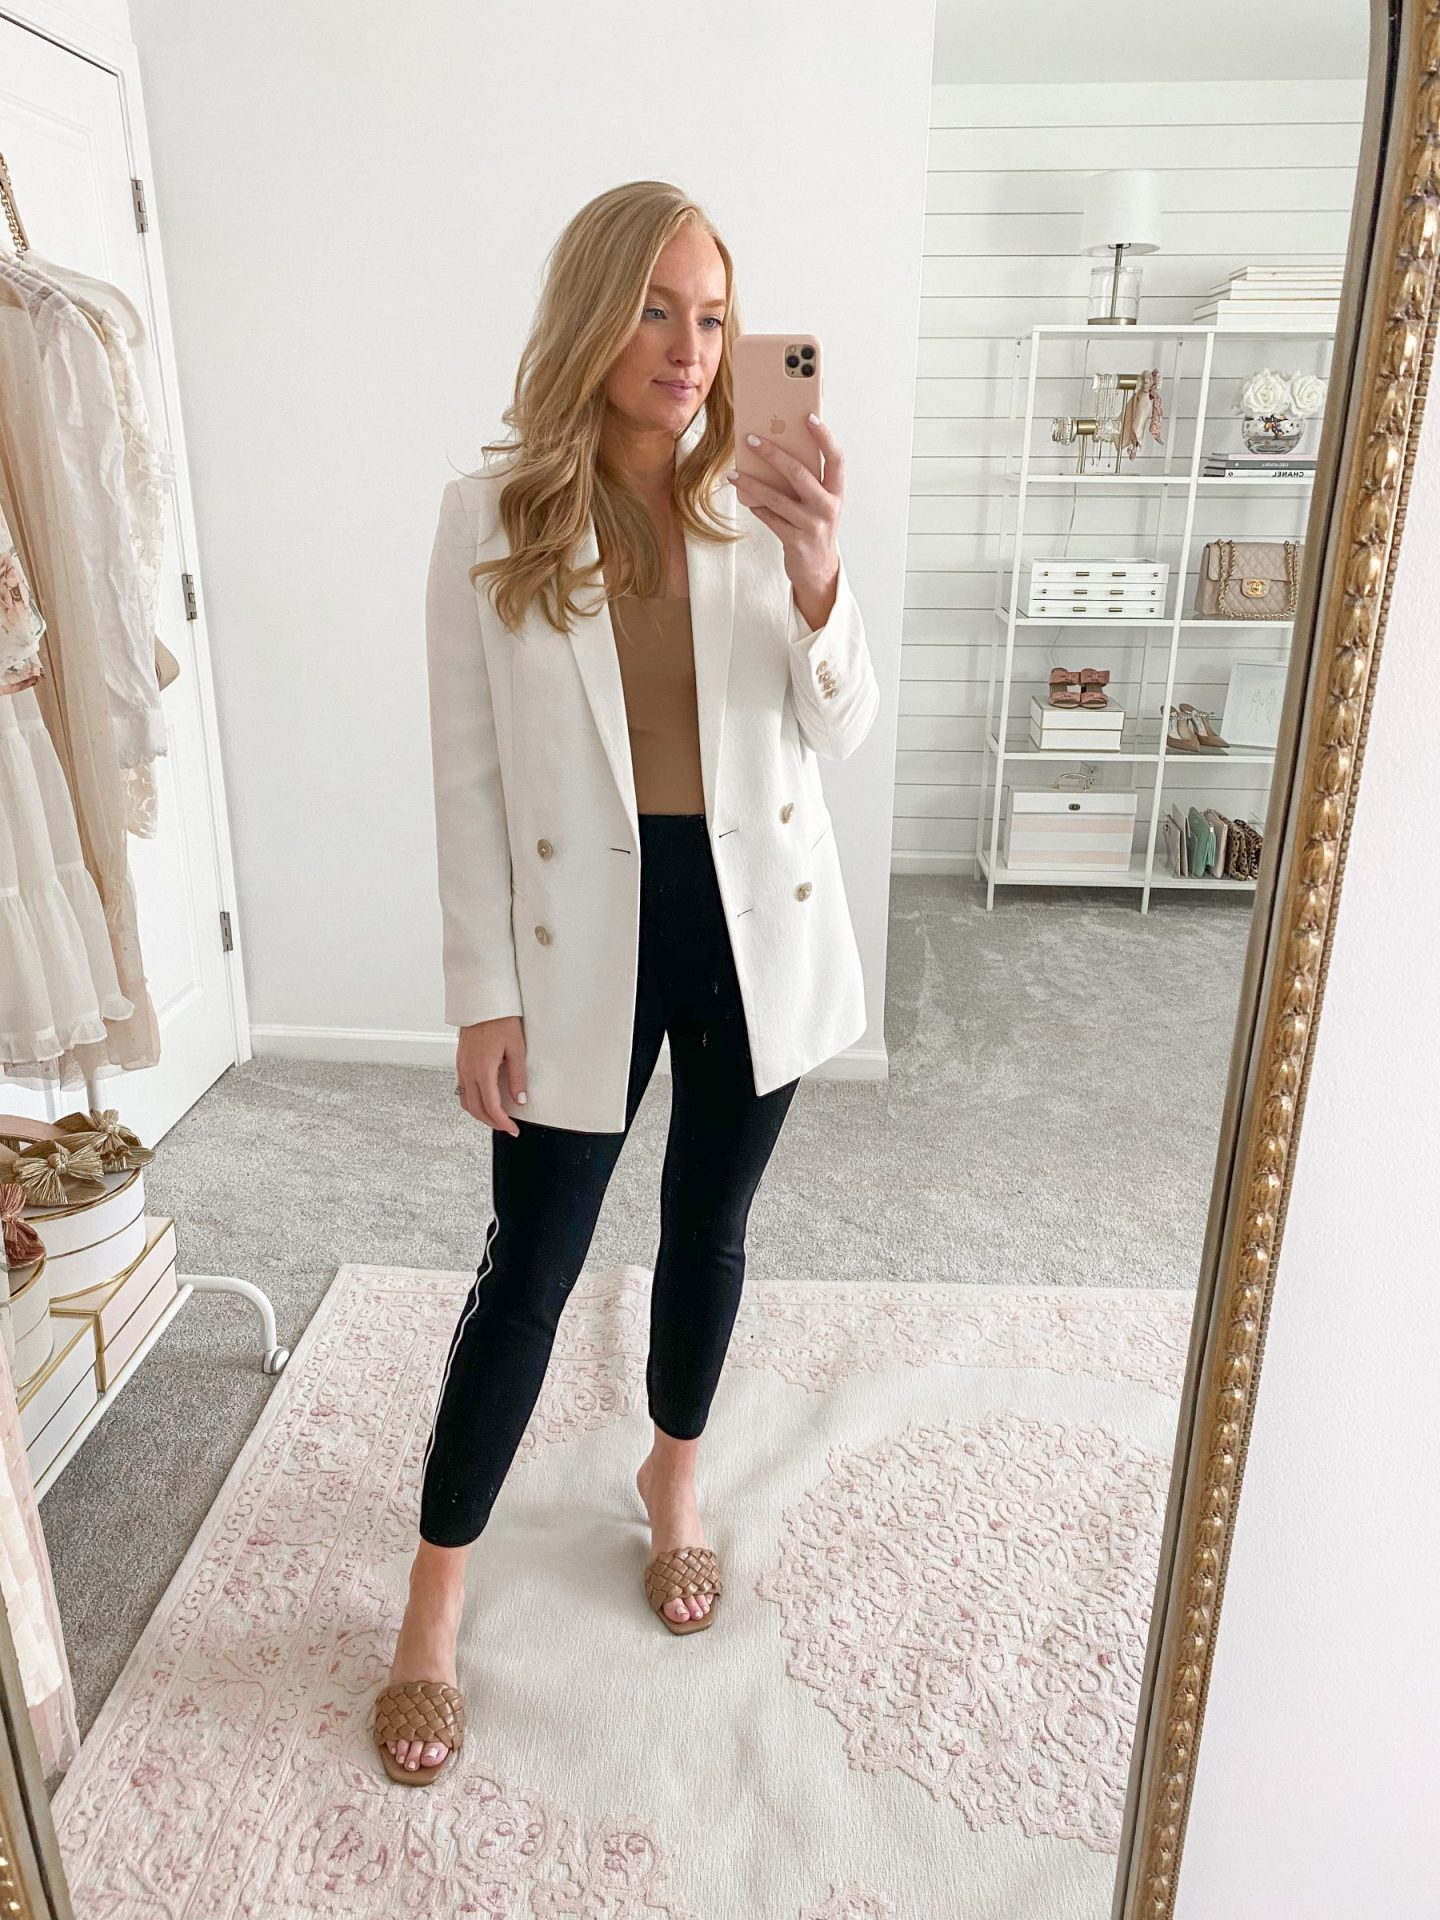 Office outfit ideas for fall